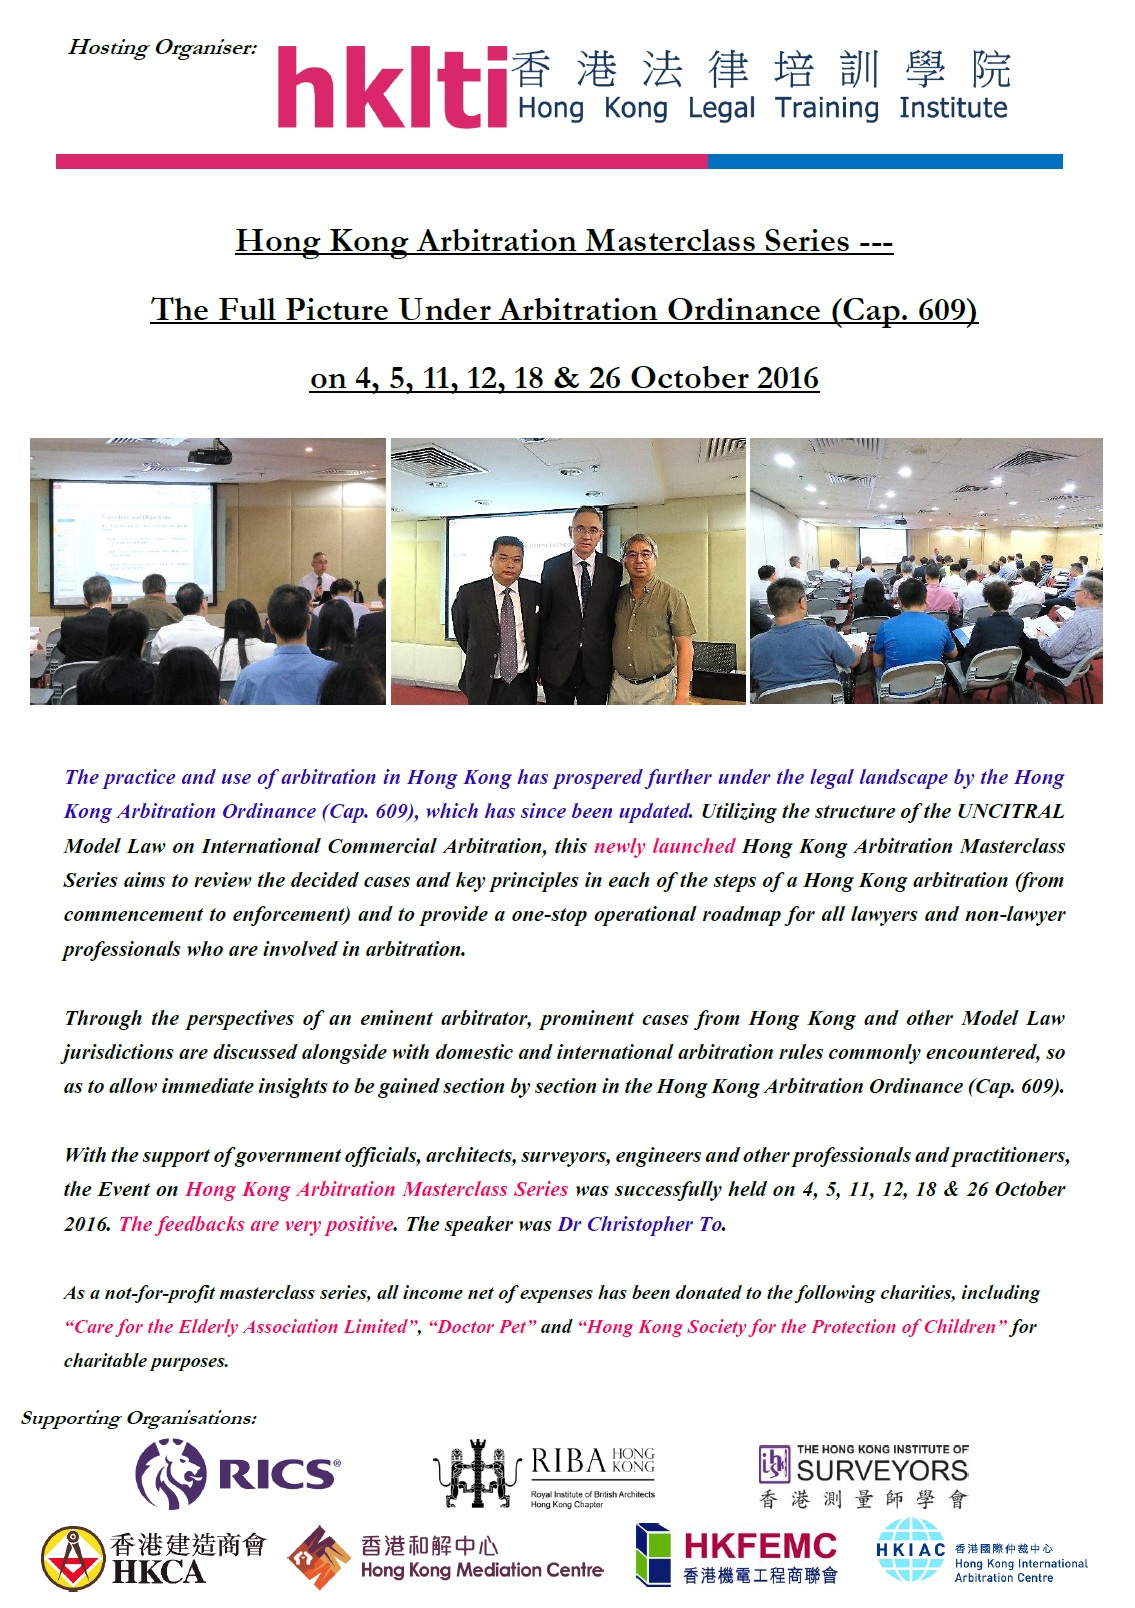 hklti self hong kong arbitration masterclass report 20161101